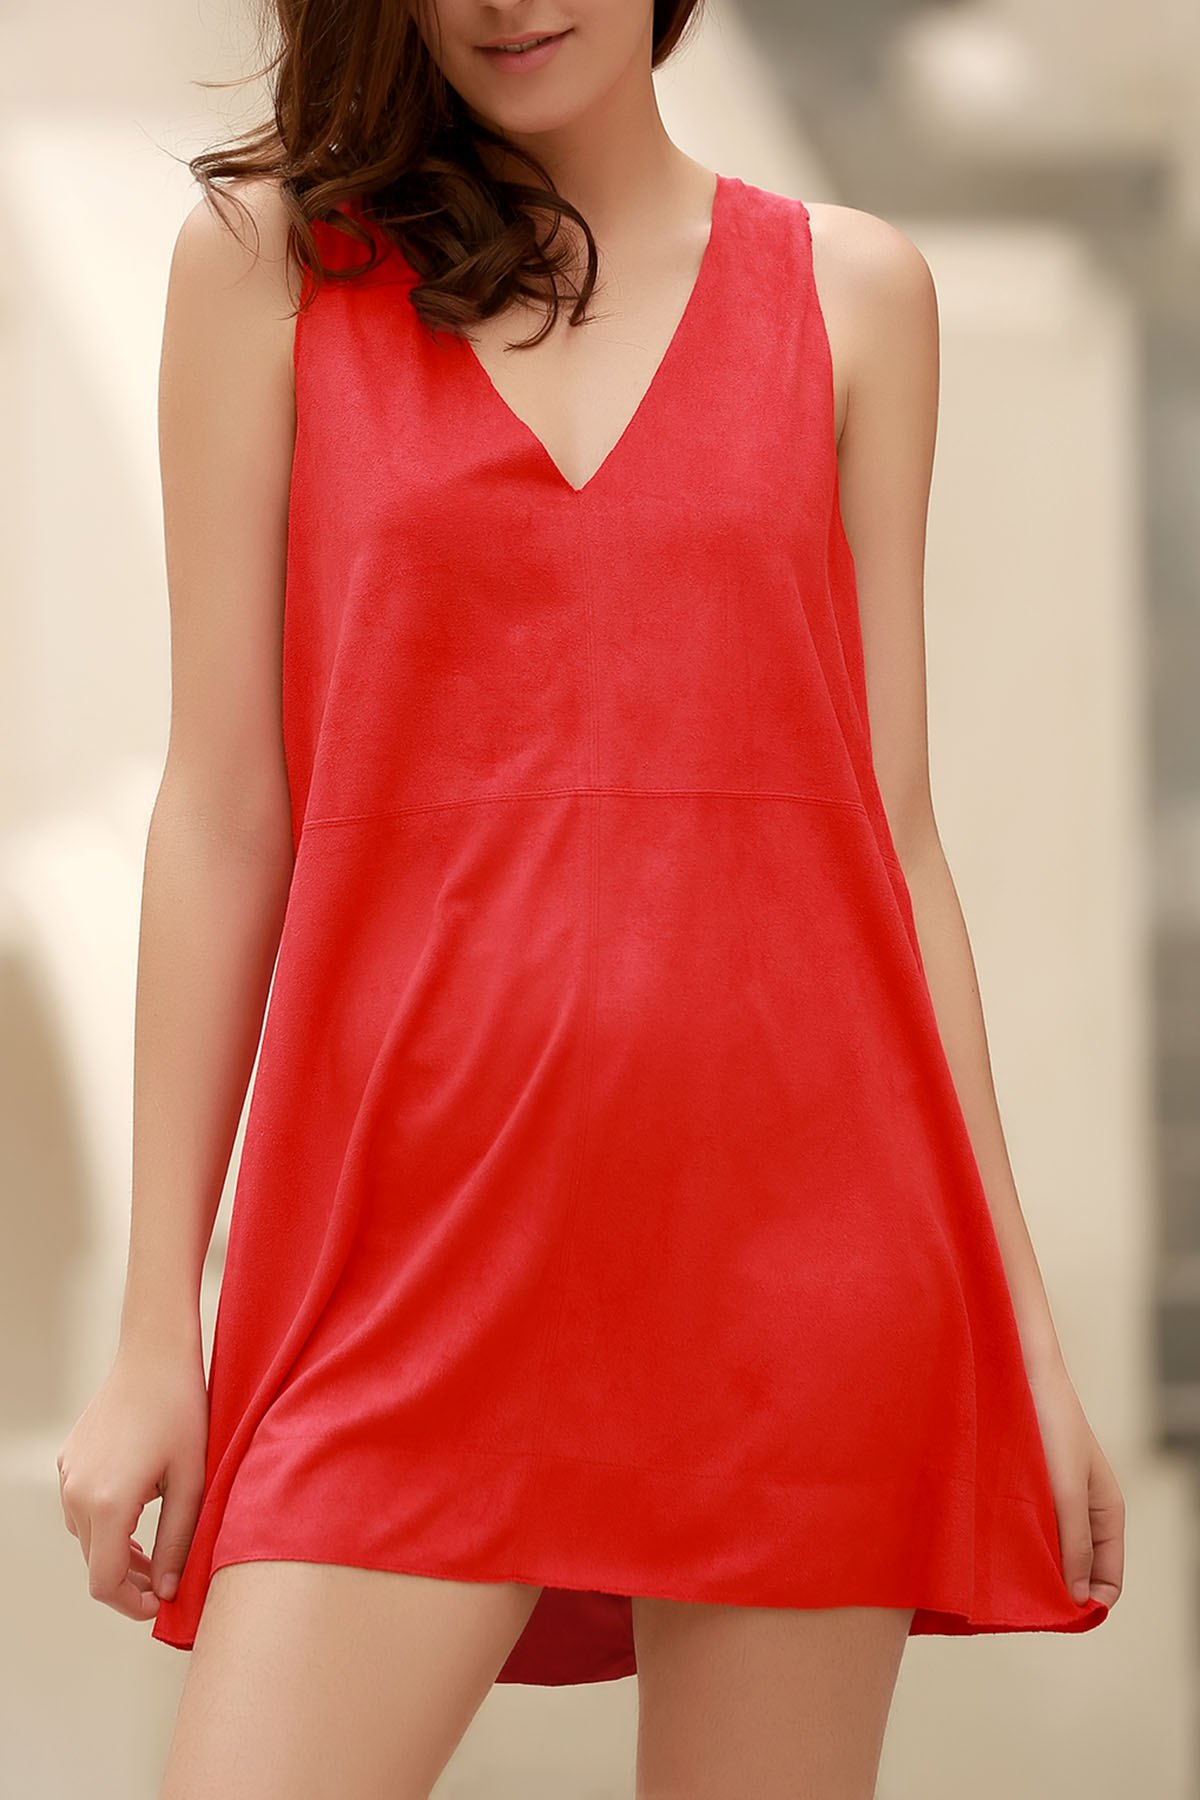 Plunging Neck Sleeveless Red Faux Suede Dress